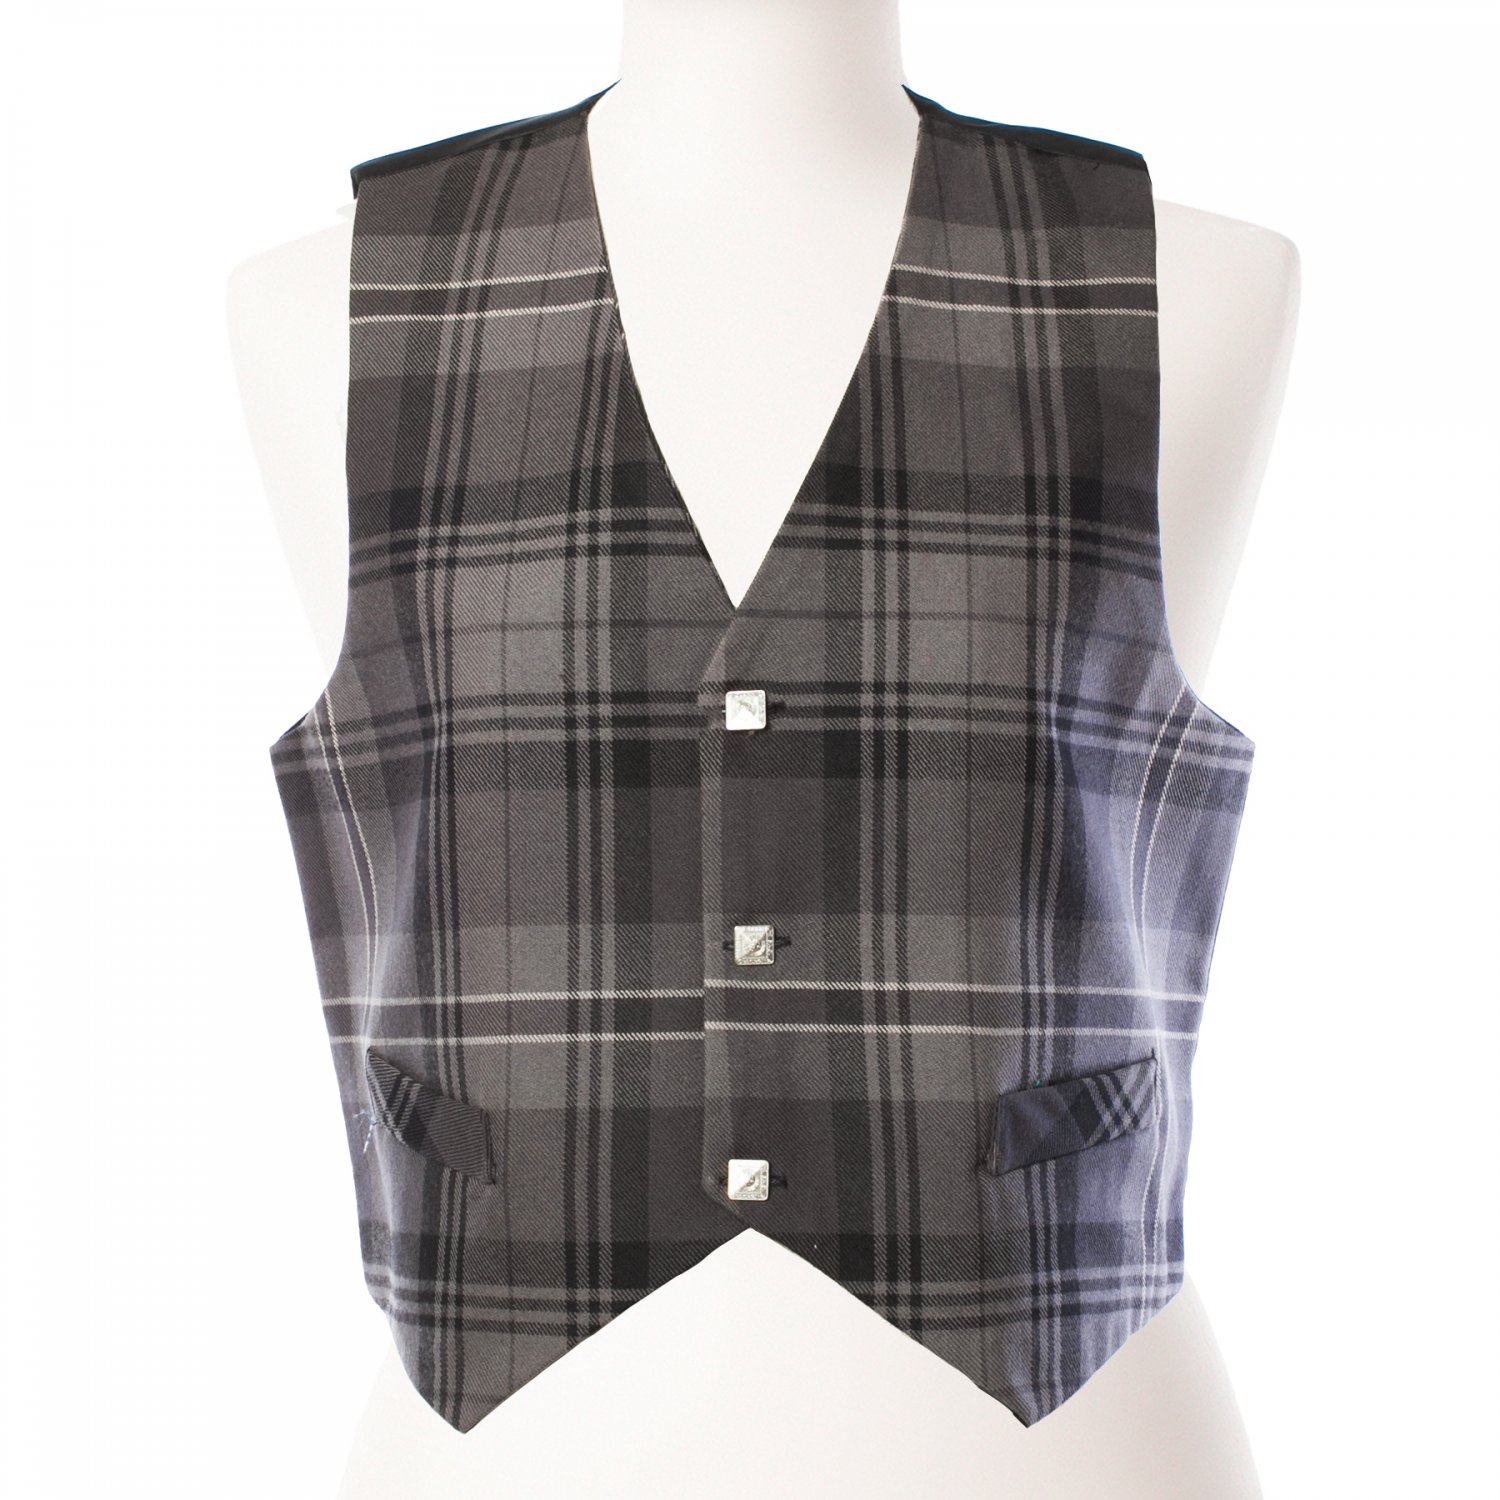 DE: Size 54 Hamlitan Premium Quality Gray Color Highland Tartan Plaid Vest Scottish Kilt Jacket Vest